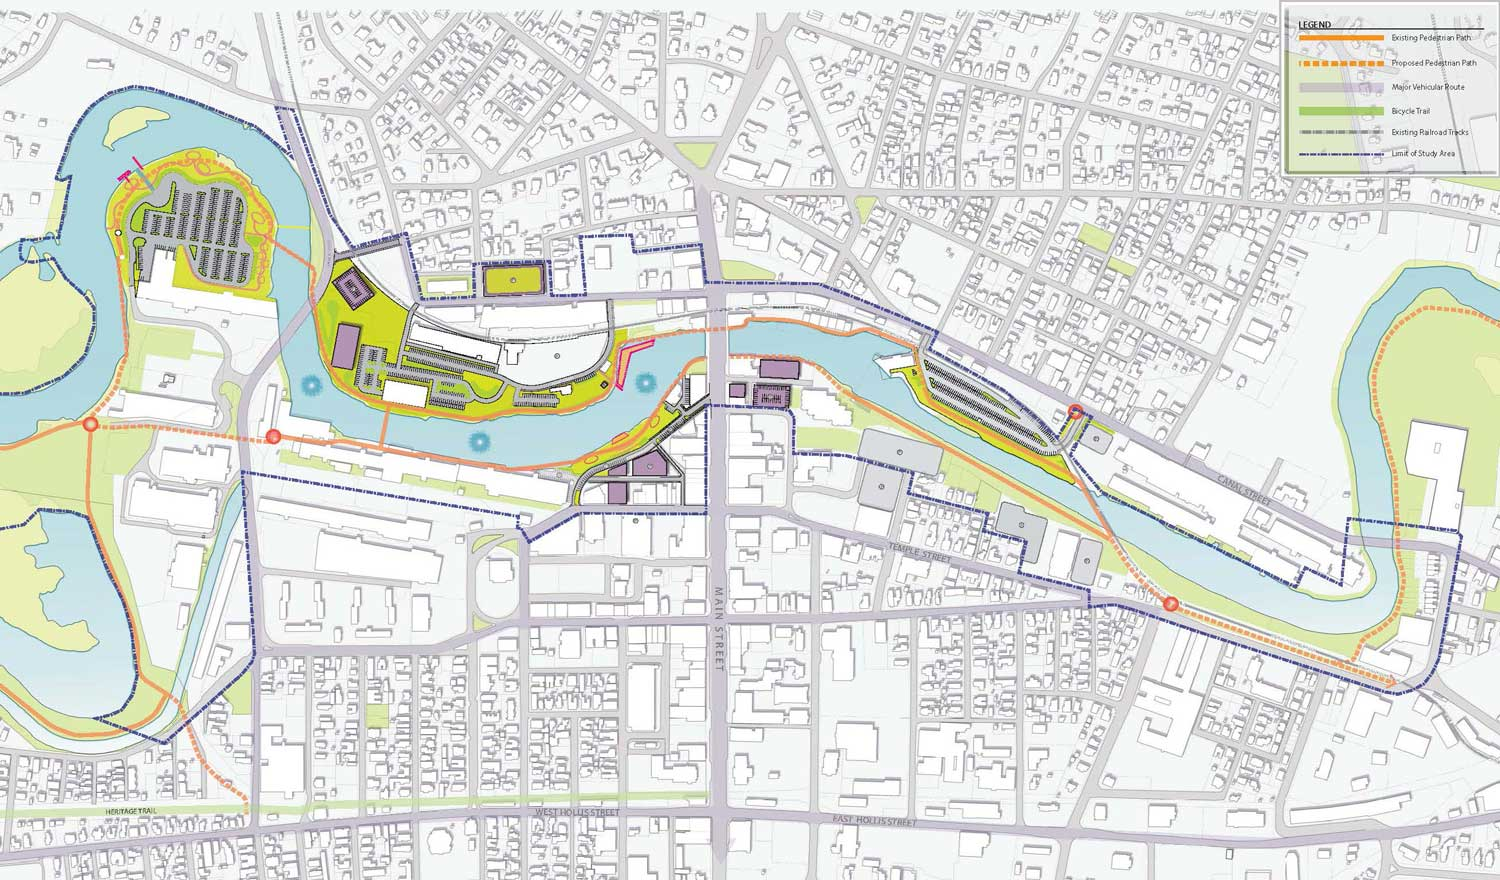 The master plan focuses on a 1.8-mile section of the Nashua River corridor that winds through downtown Nashua, from Mine Falls Park to the Bridge Street bridge.